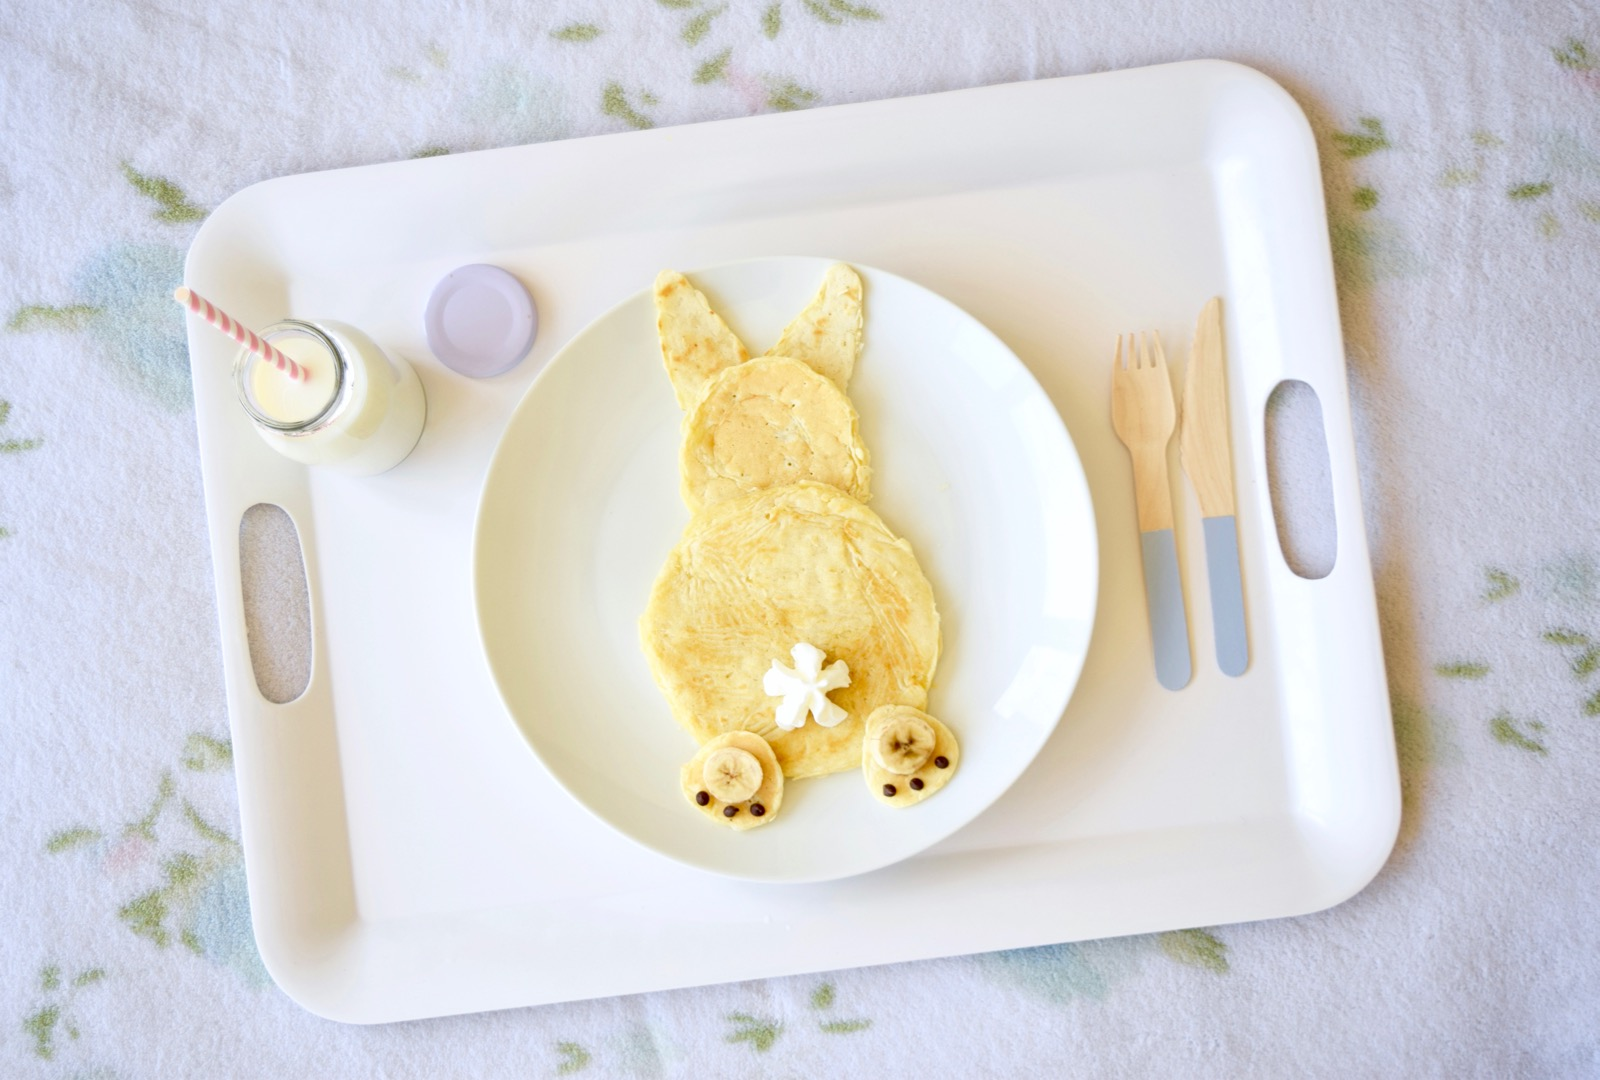 How To Make Bunny Pancakes